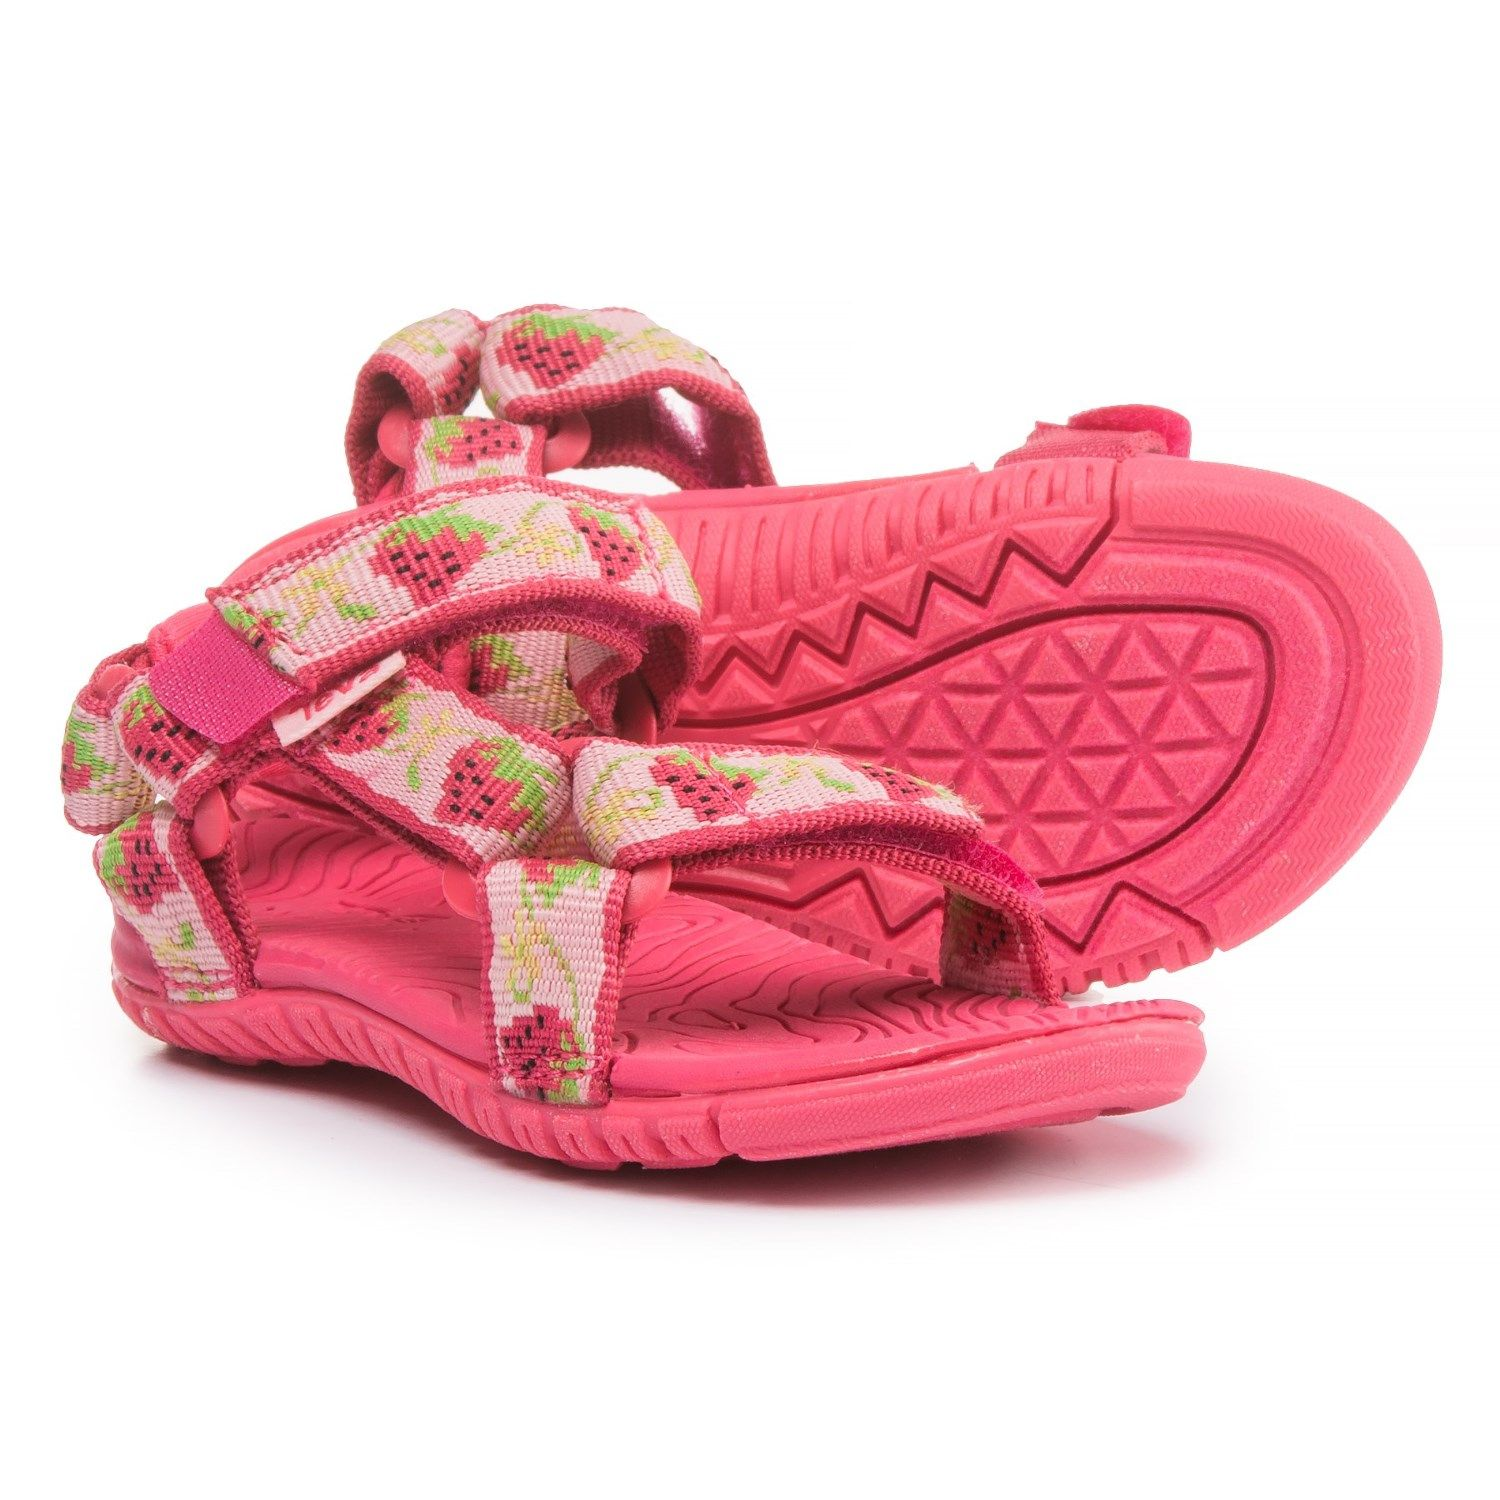 2a0db8d4e Teva Hurricane 3 Sport Sandals (For Infant and Toddler Girls) in Strawberry  Pink at Sierra Trading Post. Celebrating 30 Years Of Exploring.